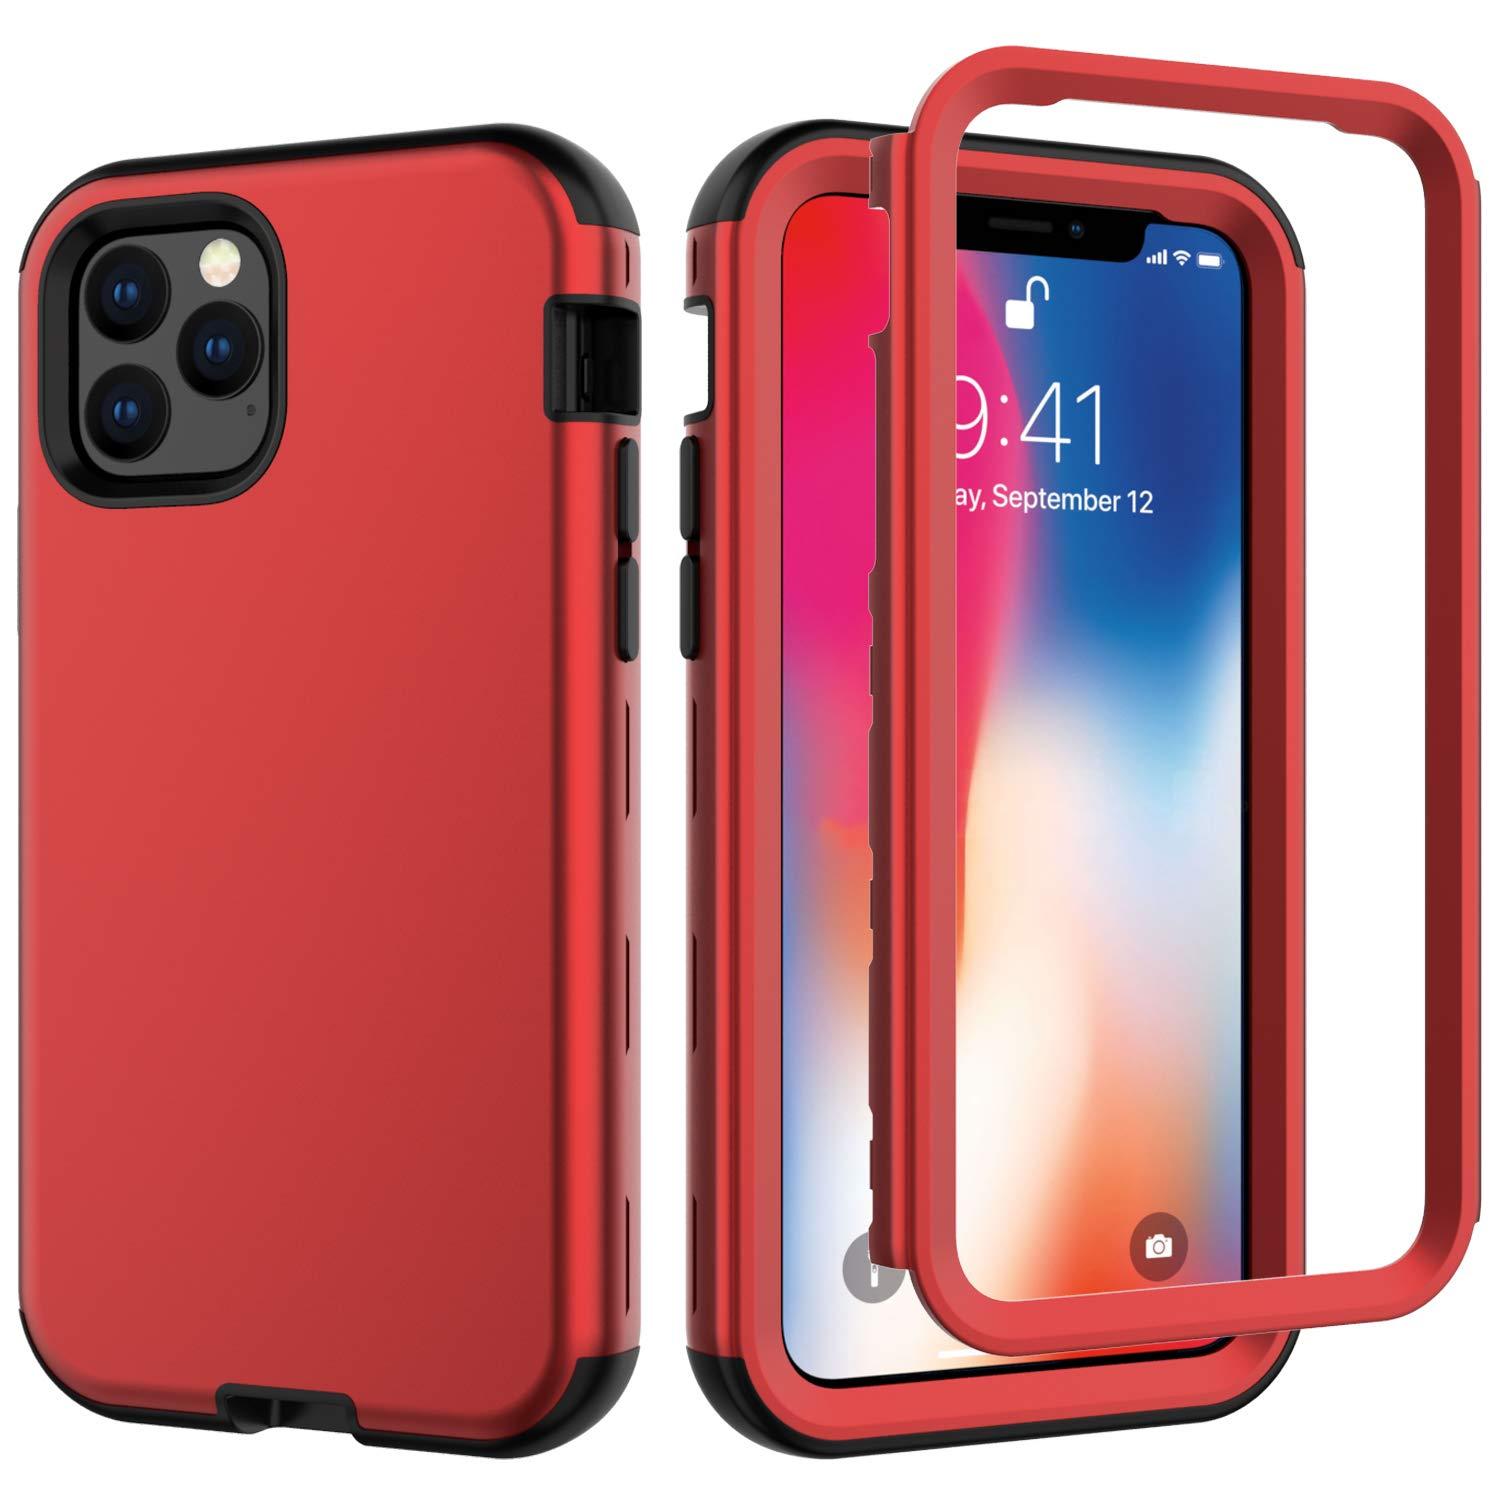 iPhone 11 Pro 2019 5.8 Case, Ranyi Rugged Full Body Protection 3 in 1 Hybrid Bumper Shock Absorbing High Impact Heavy Duty Resilient TPU Rubber Case for Apple 2019 5.8 Inch iPhone 11 Pro (red) by Ranyi